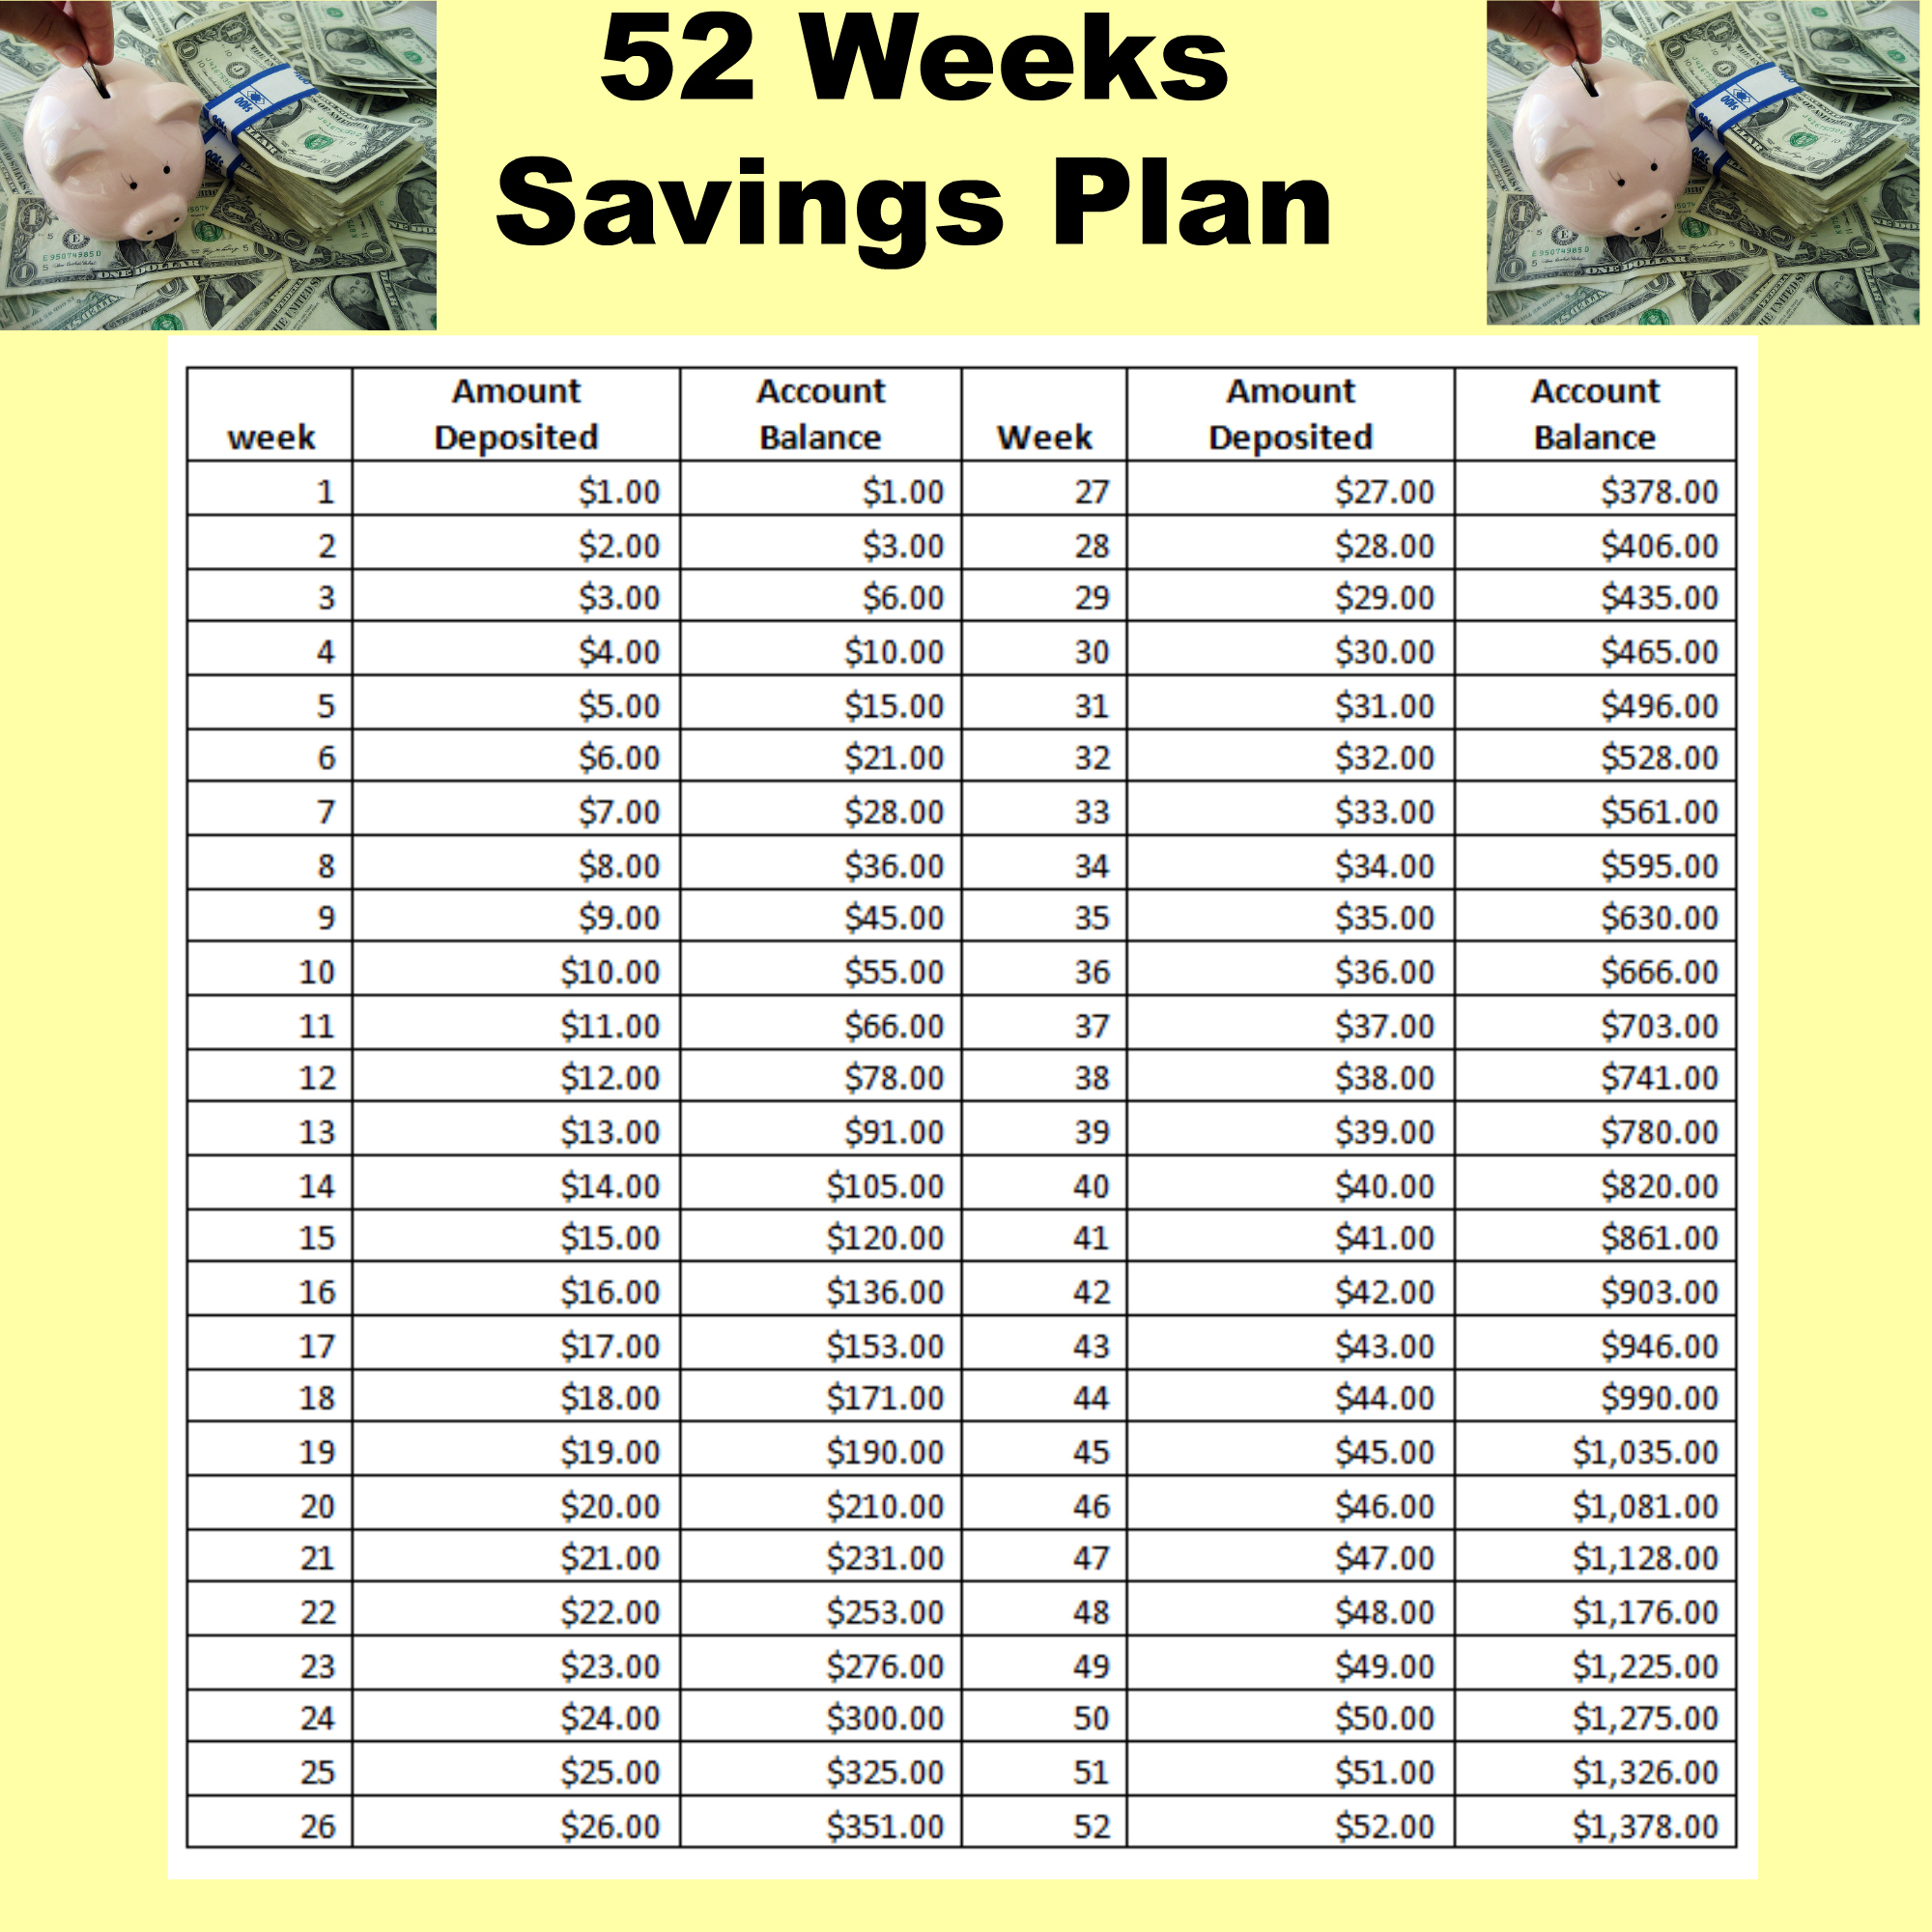 How To Save Money In 52 Weeks